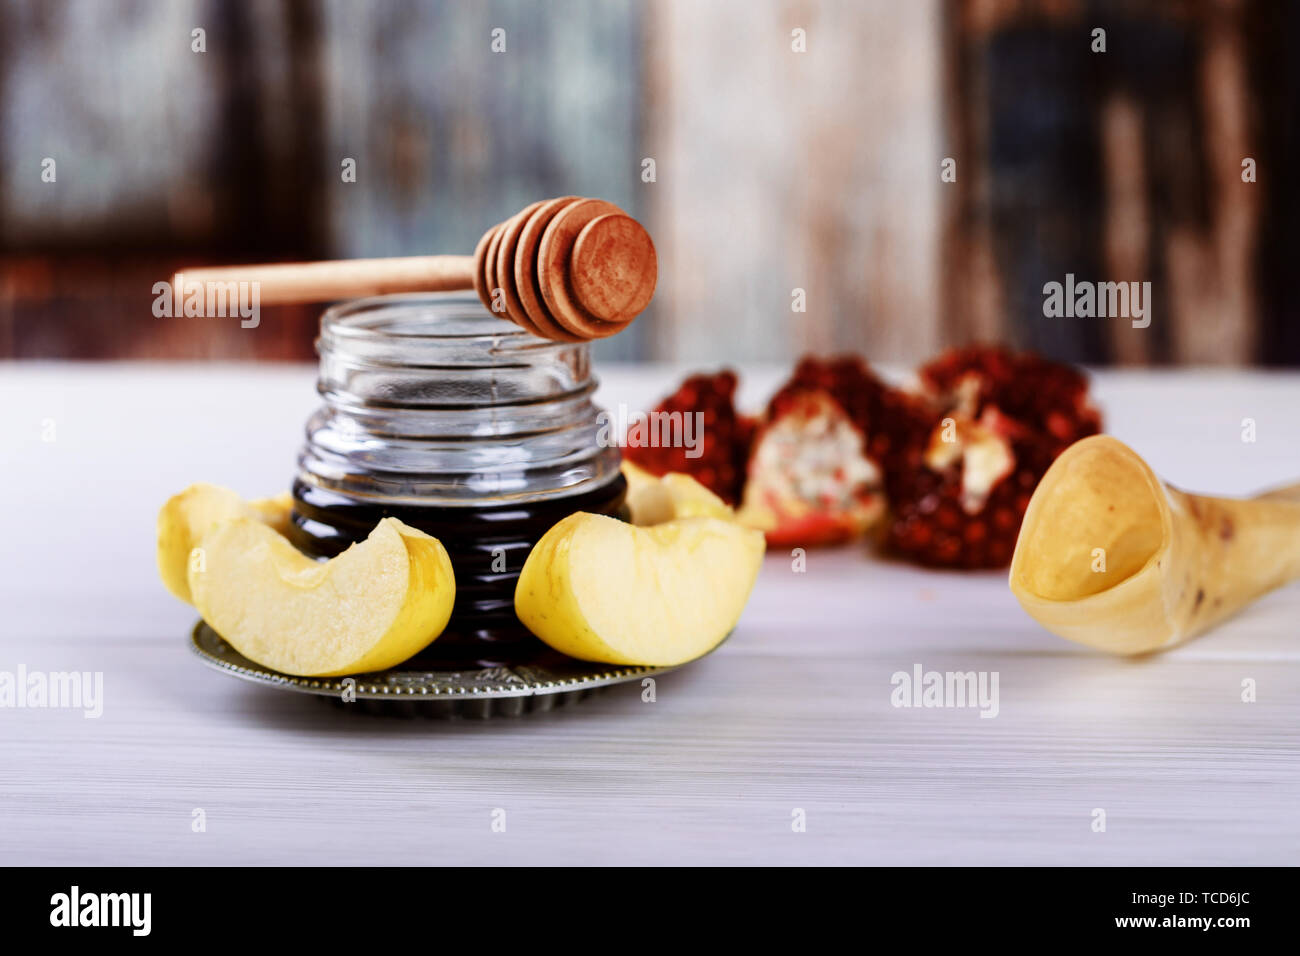 Honey jar with apples Rosh Hashana hebrew religious holiday shofar, honey and pomegranate - Stock Image